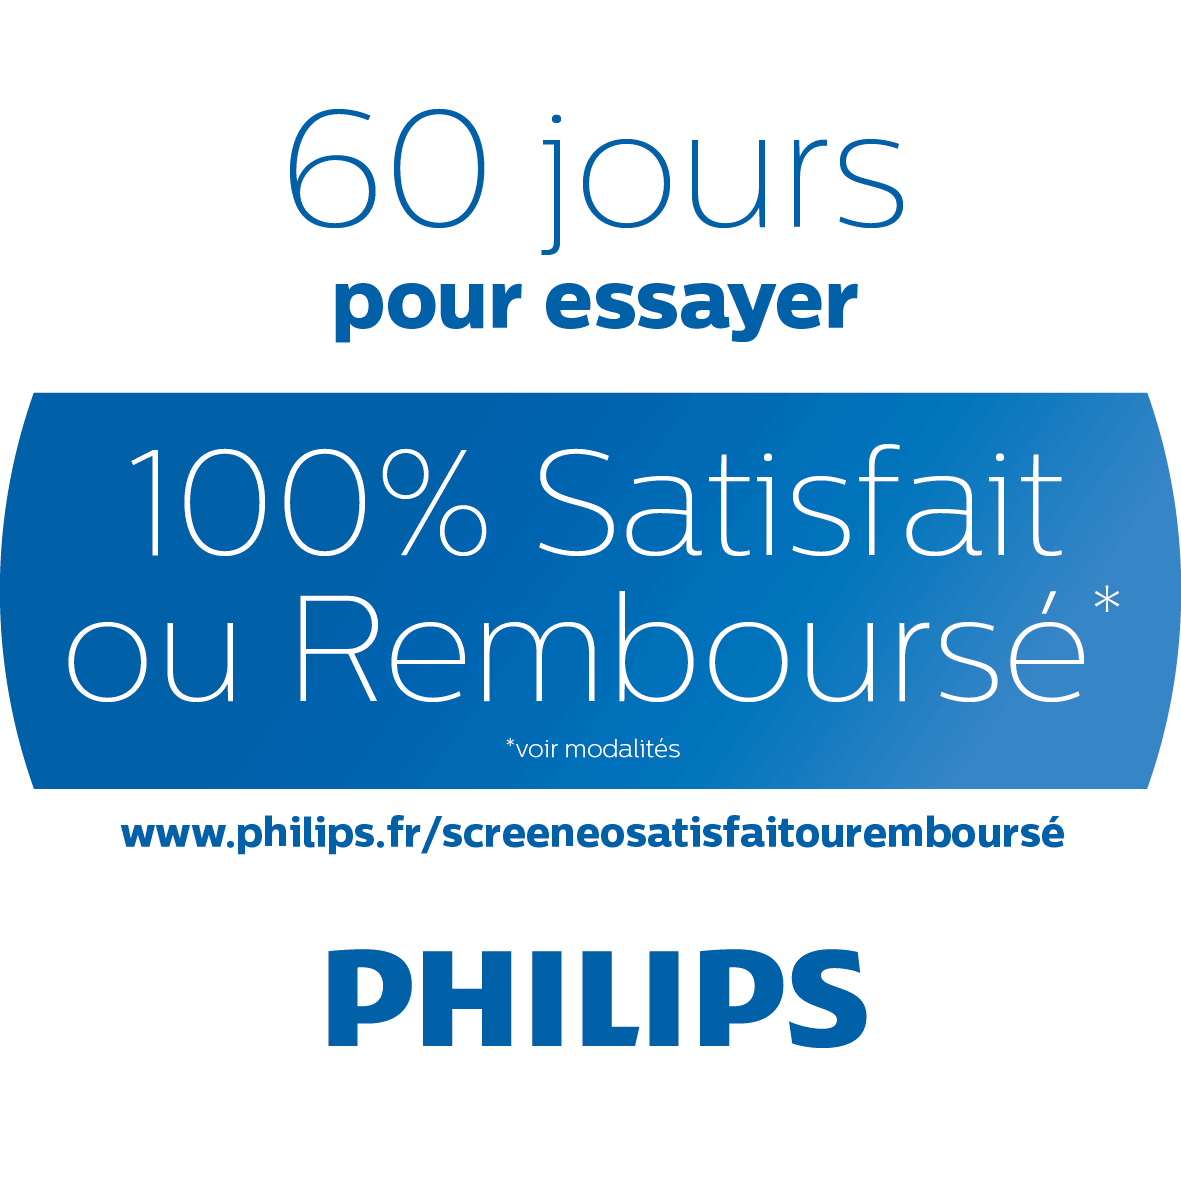 Conditions de l'offre de remboursement Philips Screeneo